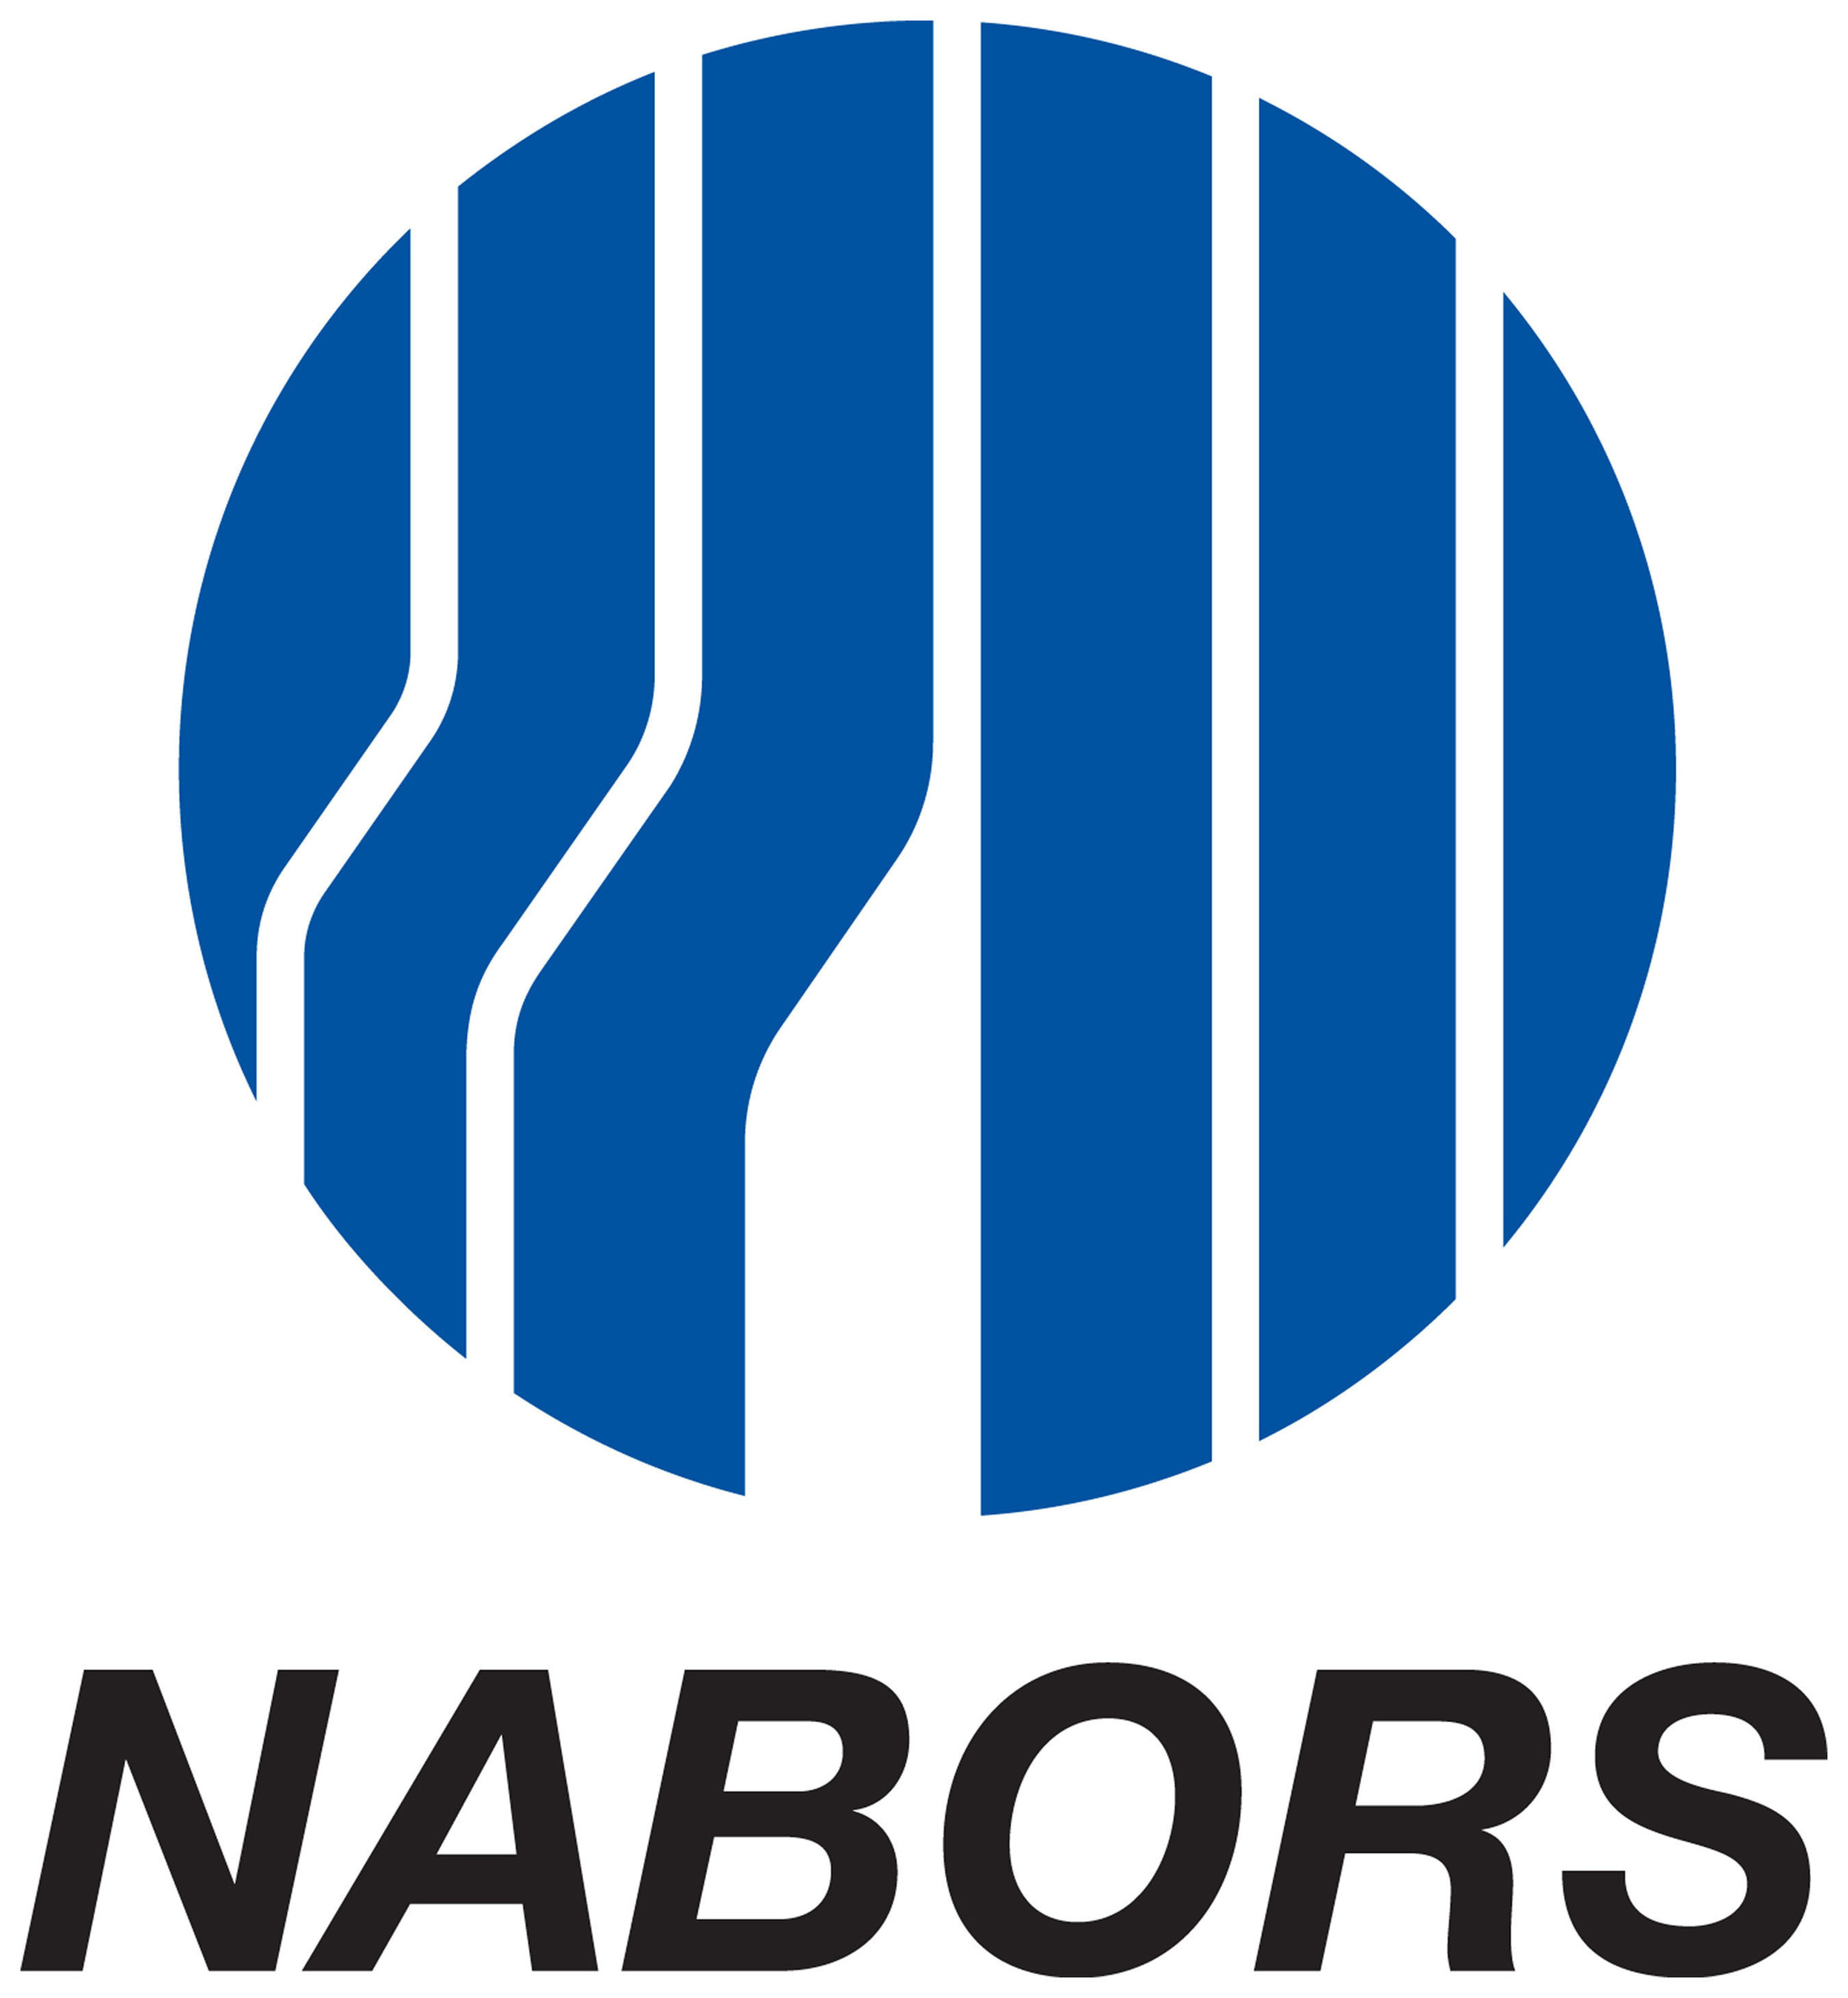 Nabors Extends Term of Revolving Credit Facility, Increases Borrowing Capacity to $2.2 Billion